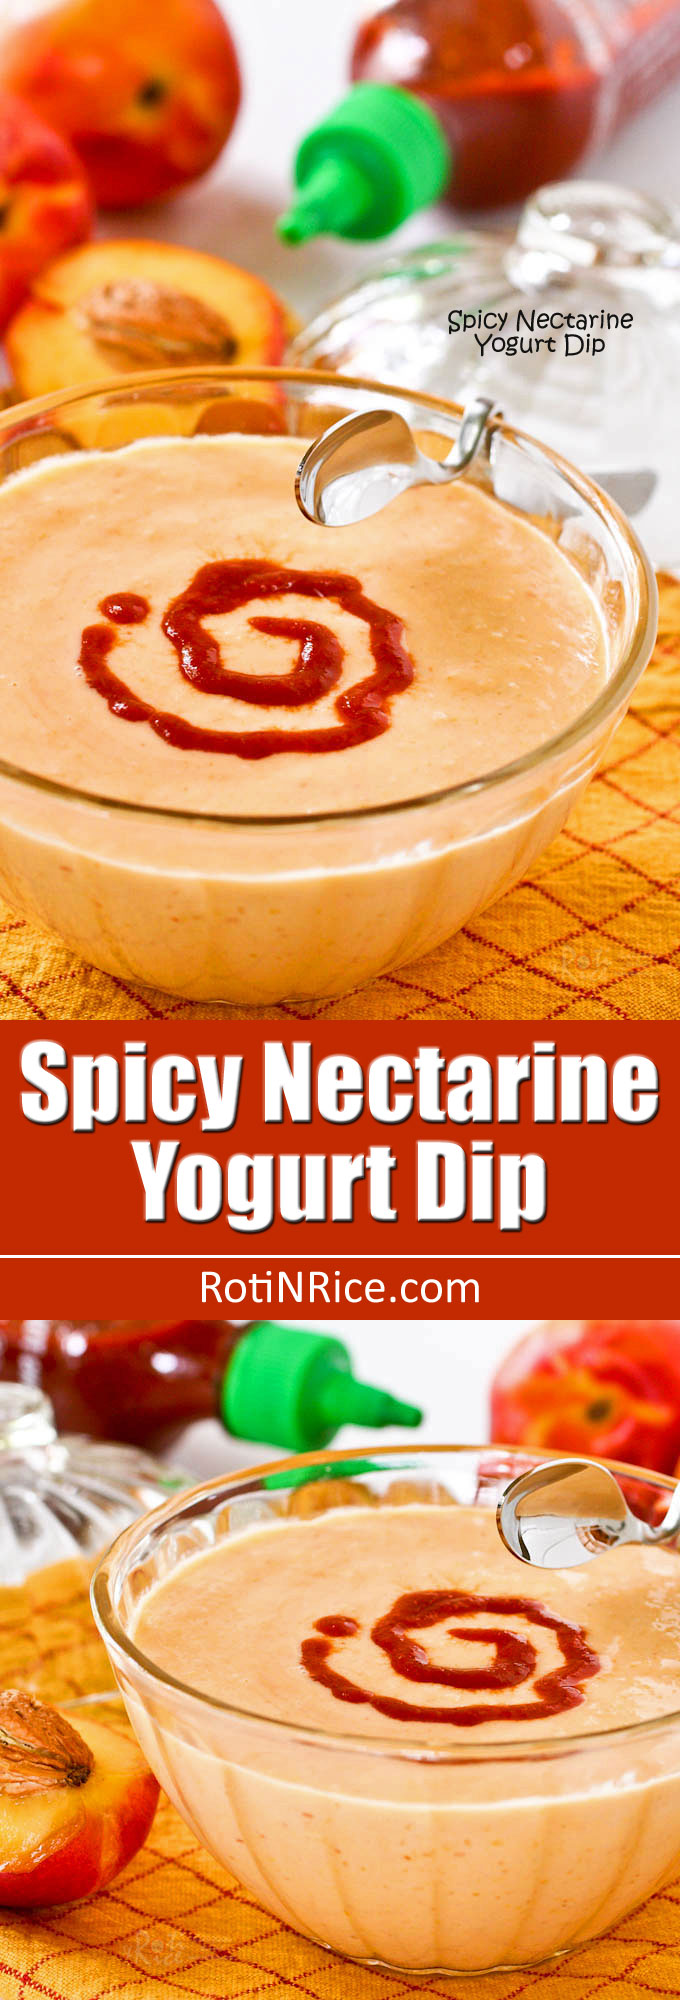 Light and fruity Spicy Nectarine Yogurt Dip spiked with Sriracha sauce. Delicious served with grilled meats, veggies, and chips. | RotiNRice.com